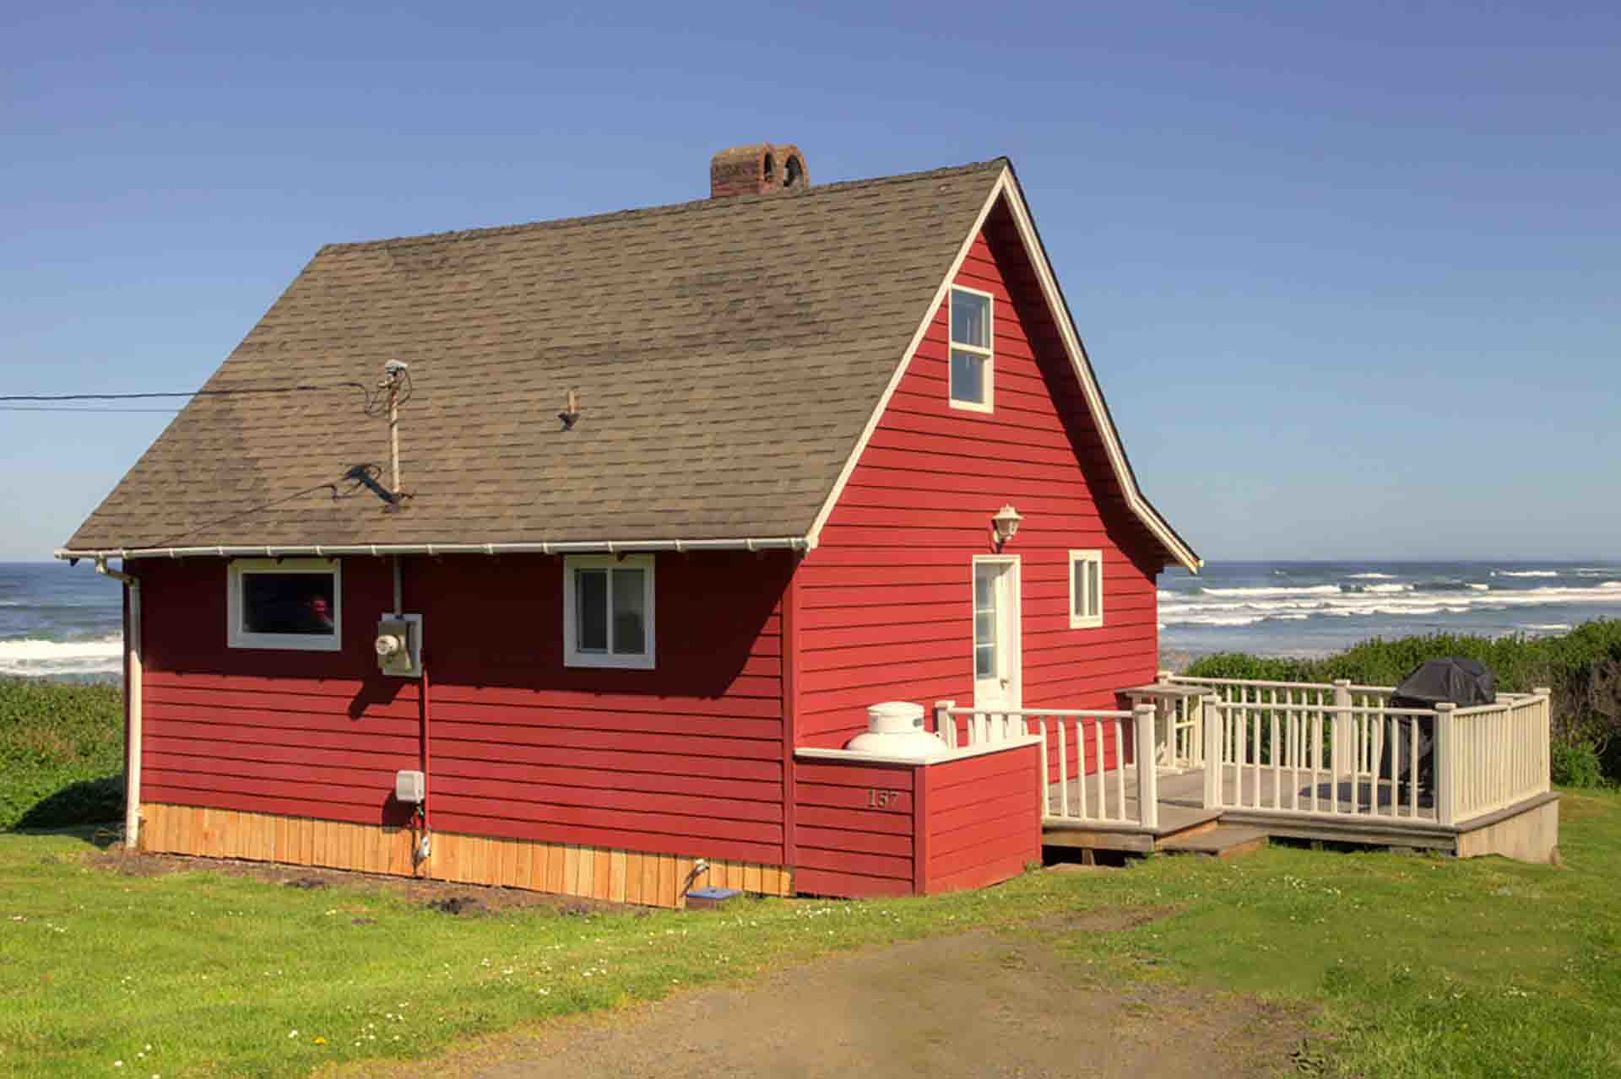 The historic Little Red Hideaway a Yachats landmark.